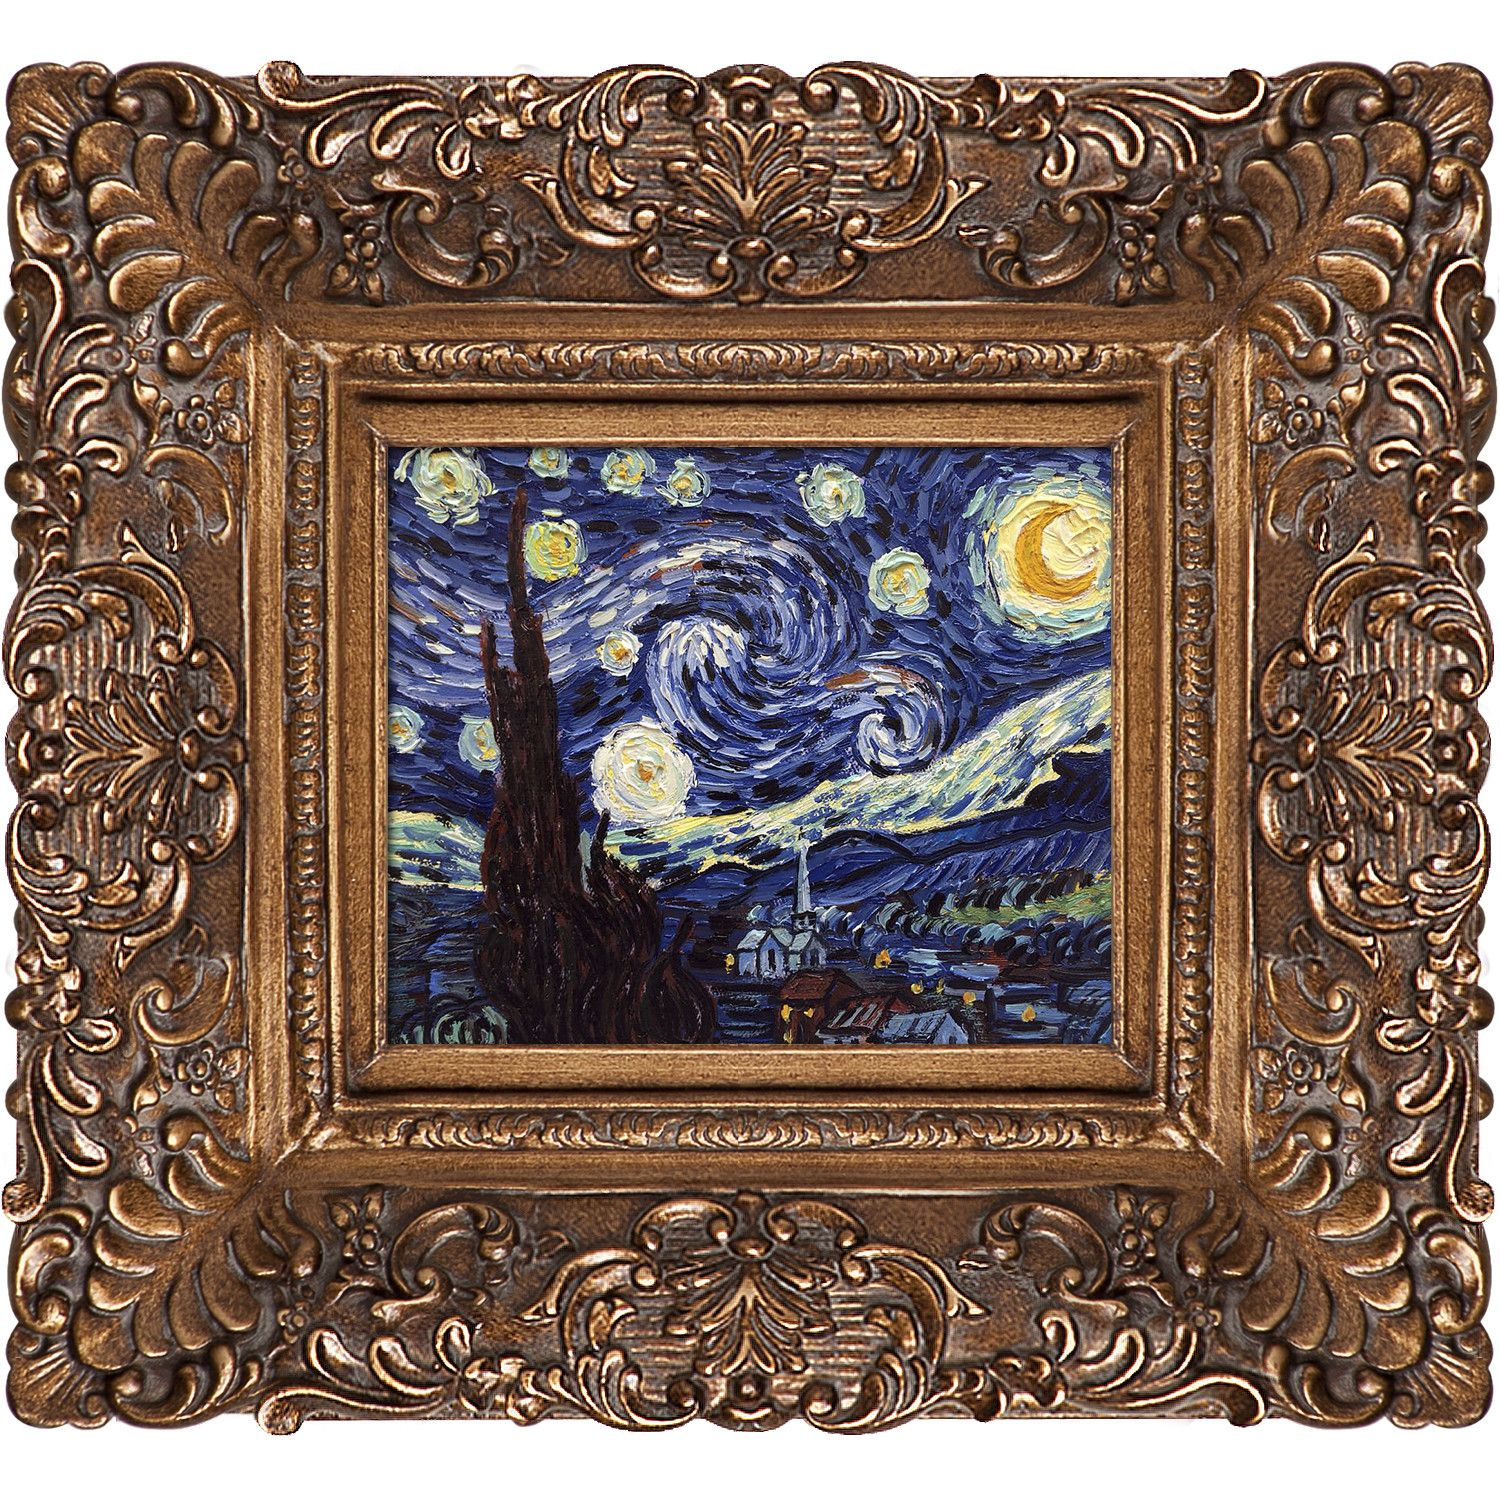 Starry Night Van Gogh Framed Print | Frames | Pinterest